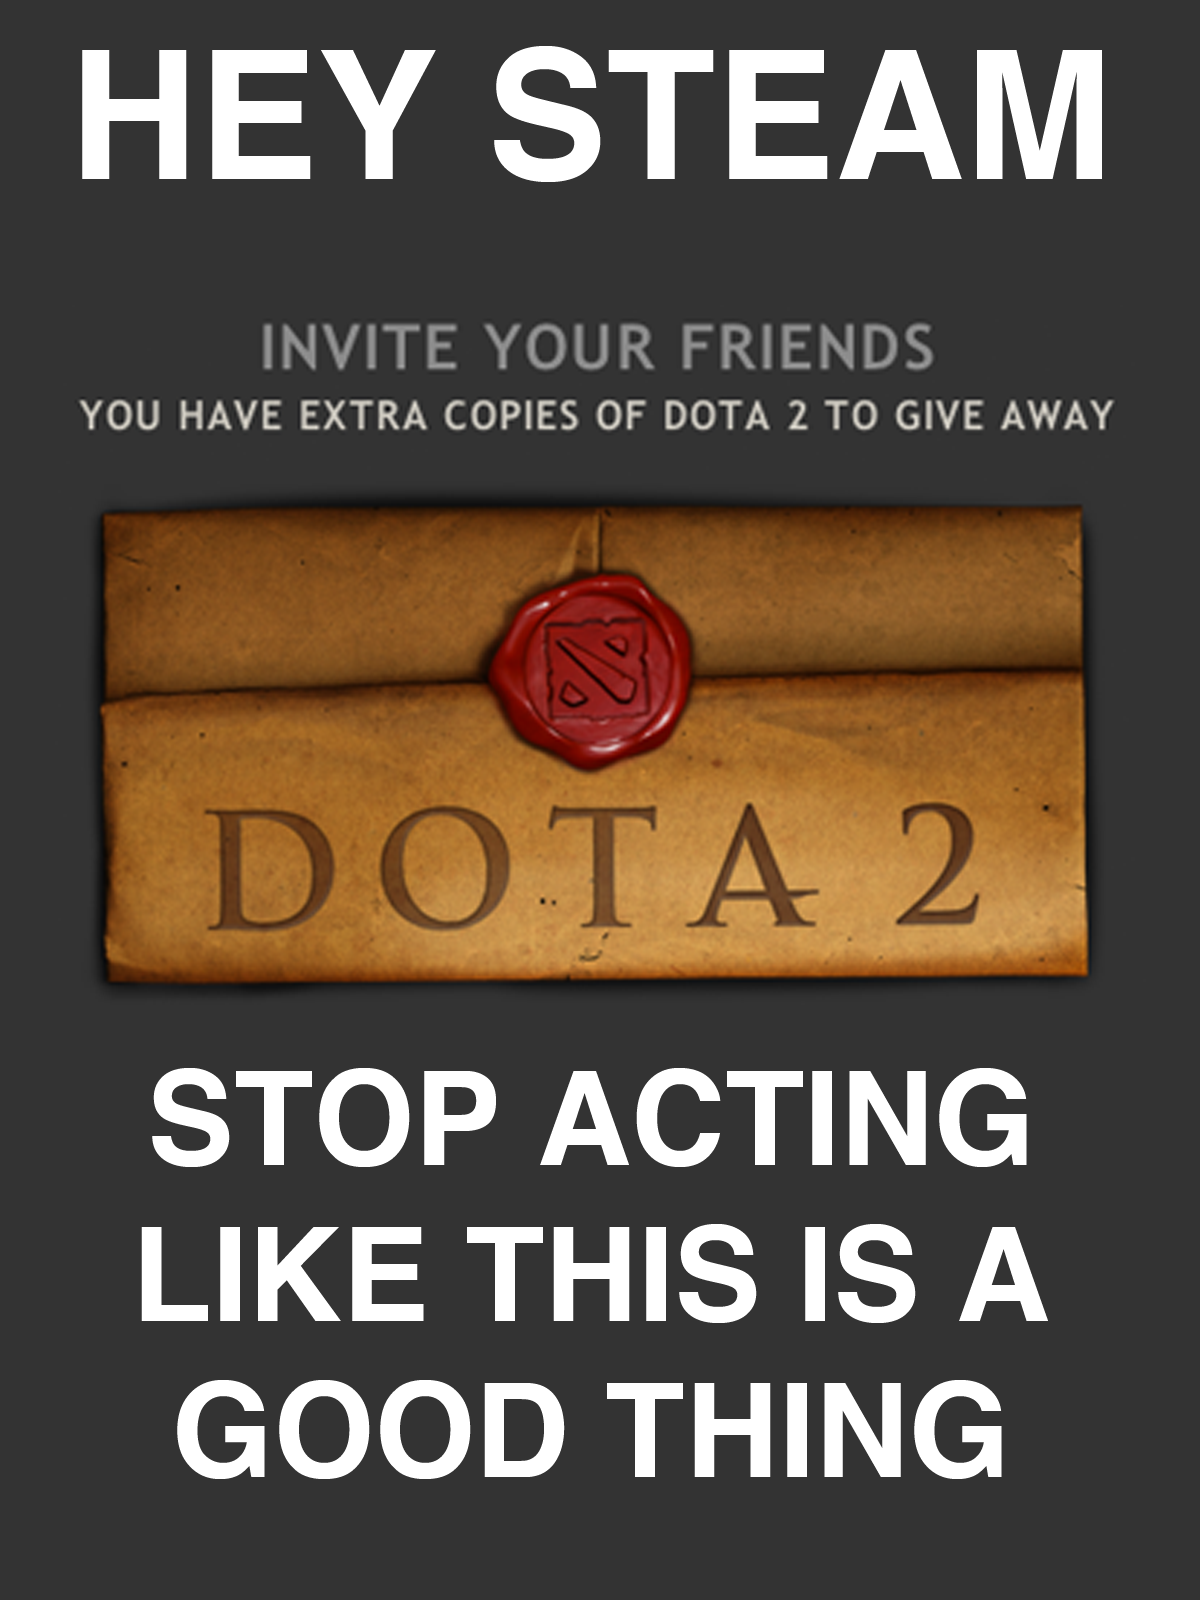 Hey Steam. I can't be the only one who thinks this. LIKE THIS Ki) Jlt. I played DotA, HoN and LoL and I liked LoL the most. Its just a matter of opinion so play the one that you like most and stop dissing people for liking somethin